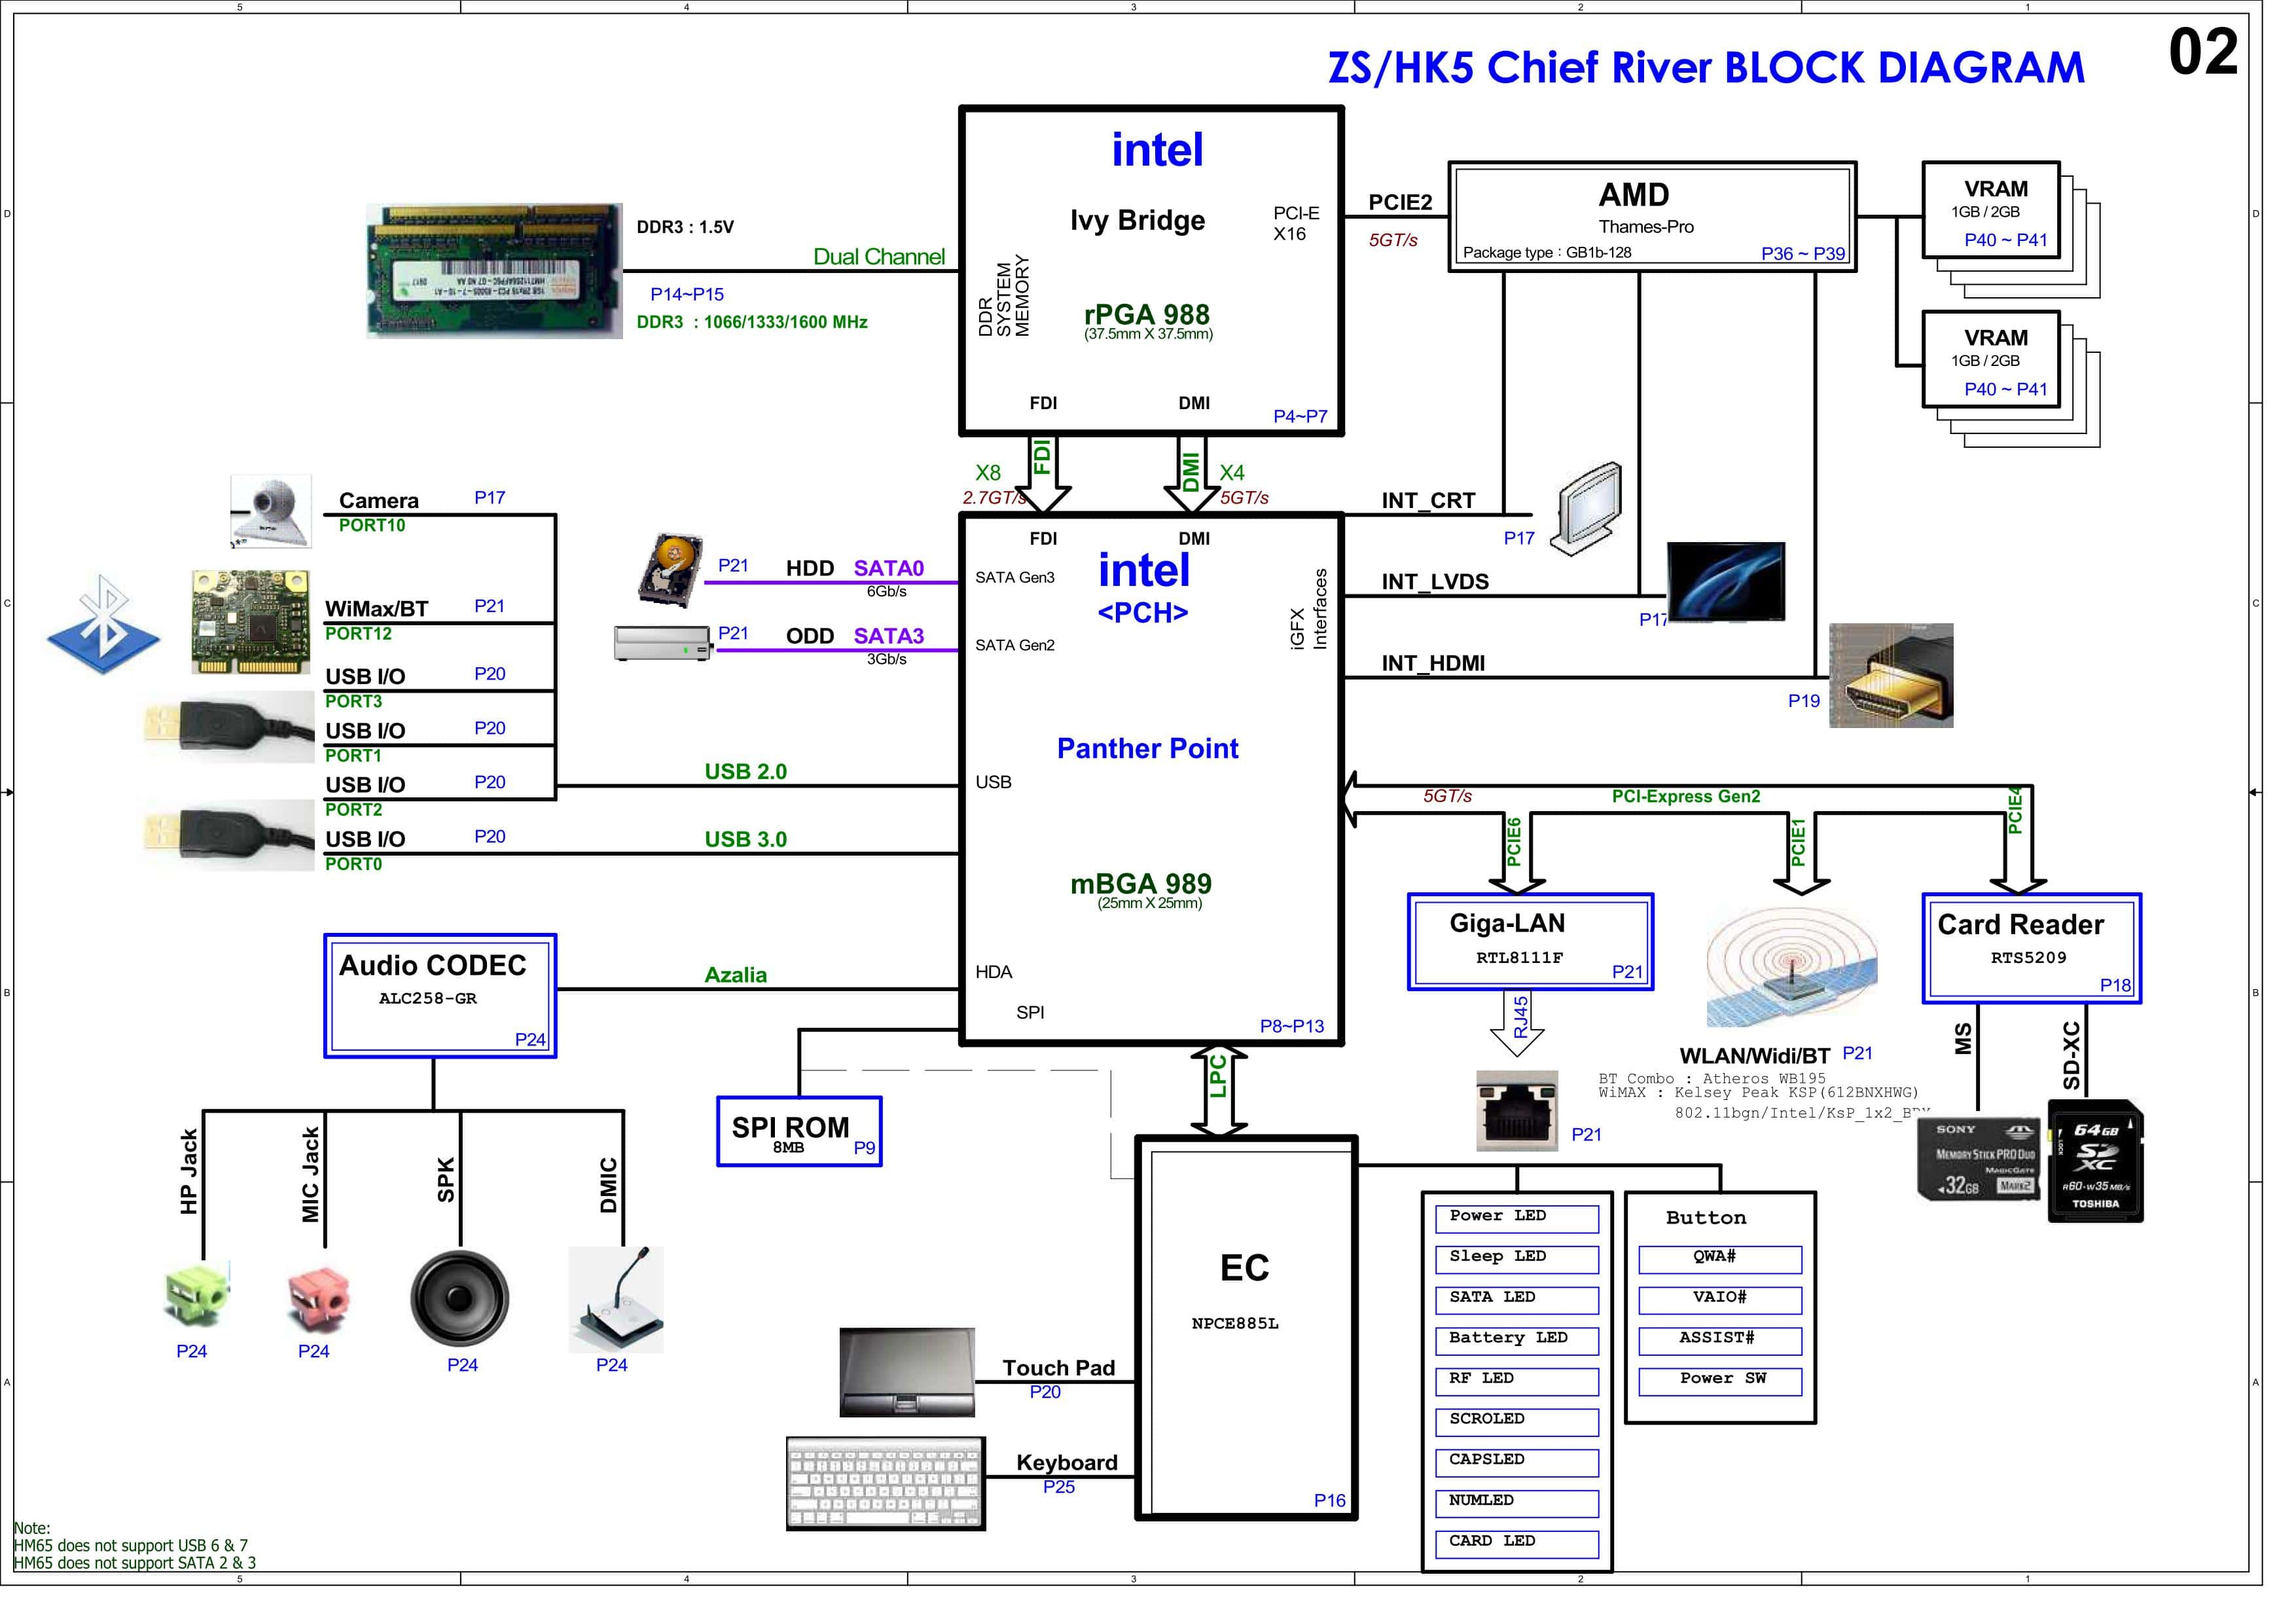 block diagram-المخطط